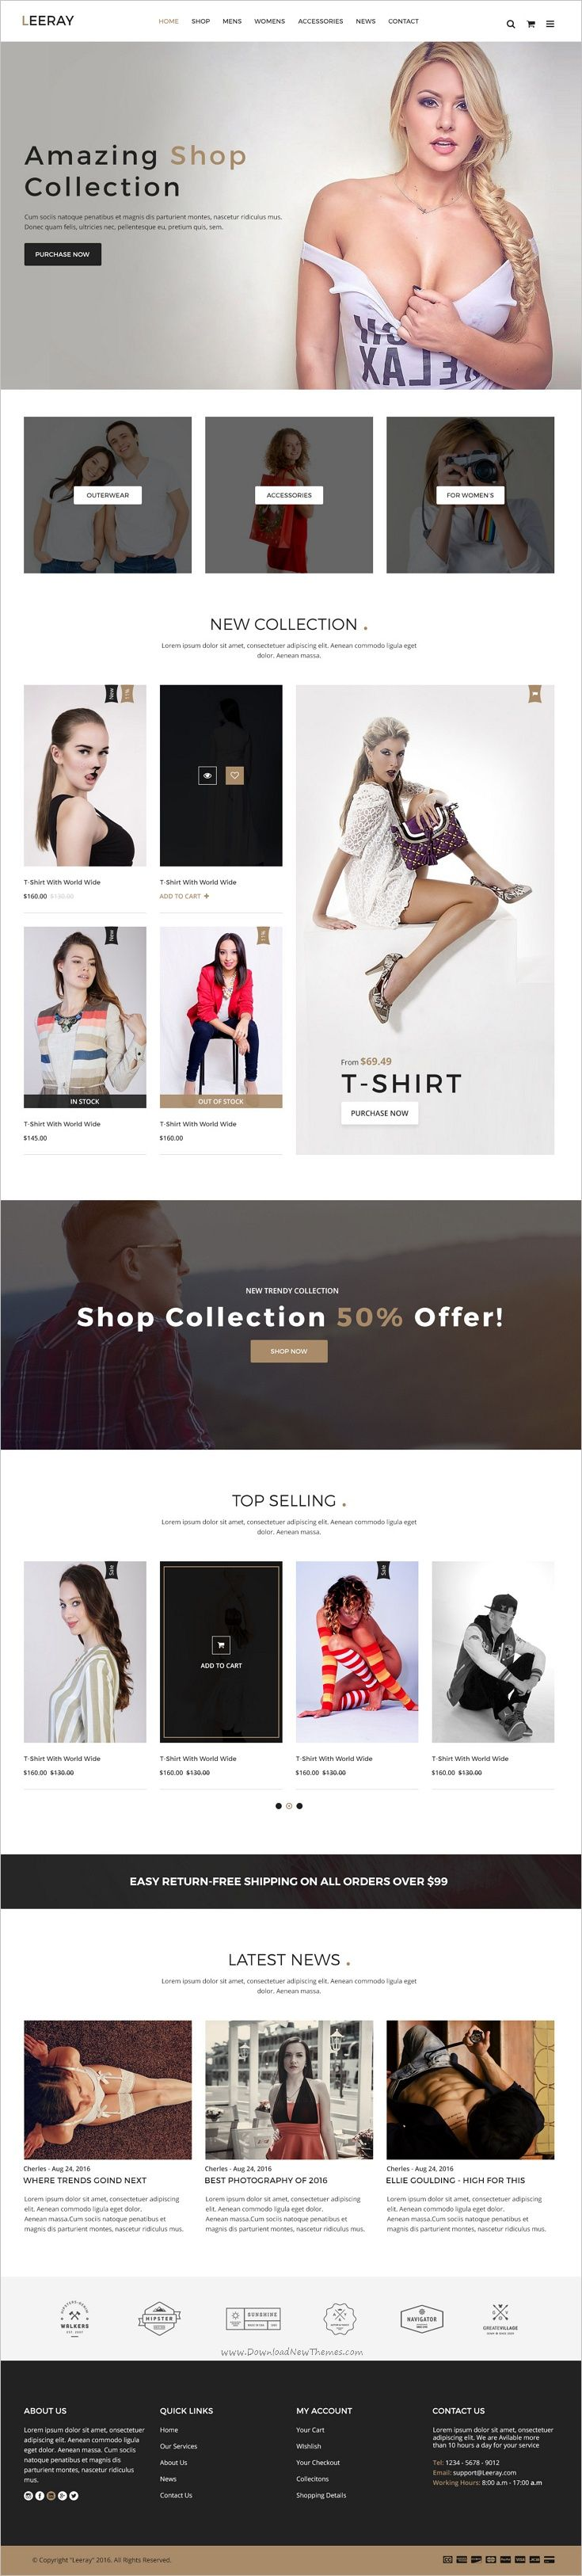 Leeray is a clean and modern design #Photoshop #Template for responsive #onlineshop eCommerce website download now➩  https://themeforest.net/item/leeray-ecommerce-psd-template/18650853?ref=Datasata